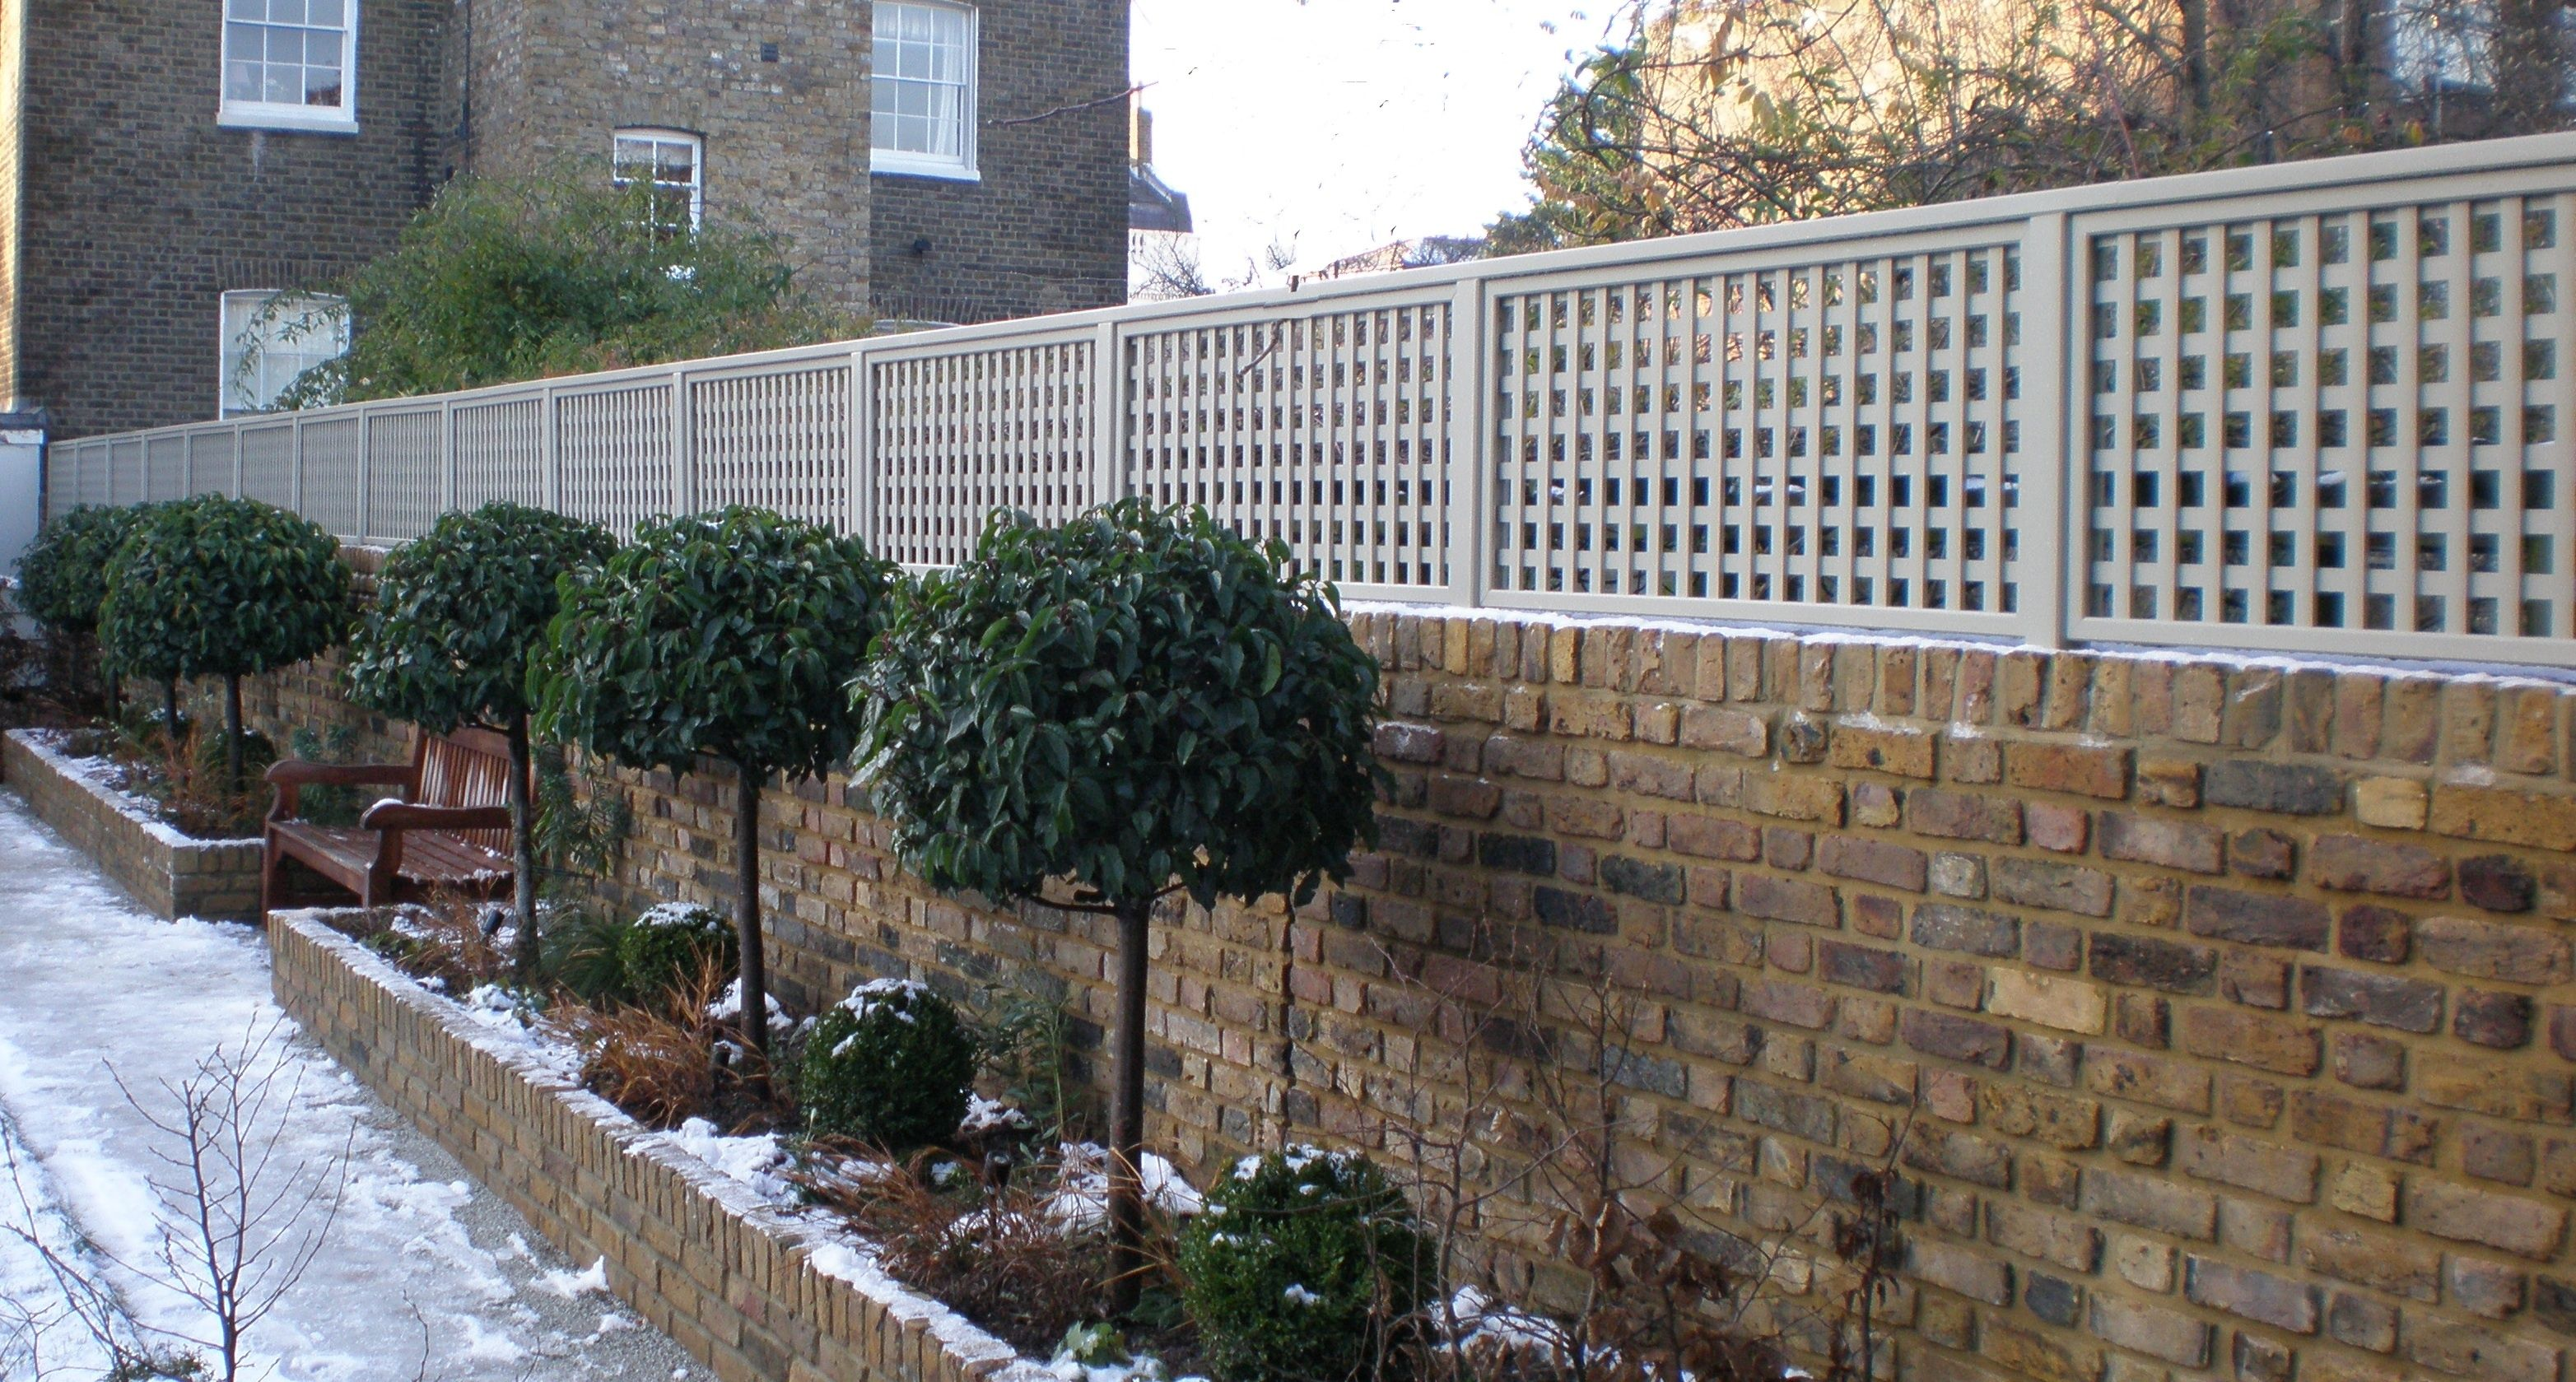 Ordinary Painted Trellis Ideas Part - 14: Trellis Painted Light Grey On Top Of Brick Wall. Raised Bed With Standard  Trees